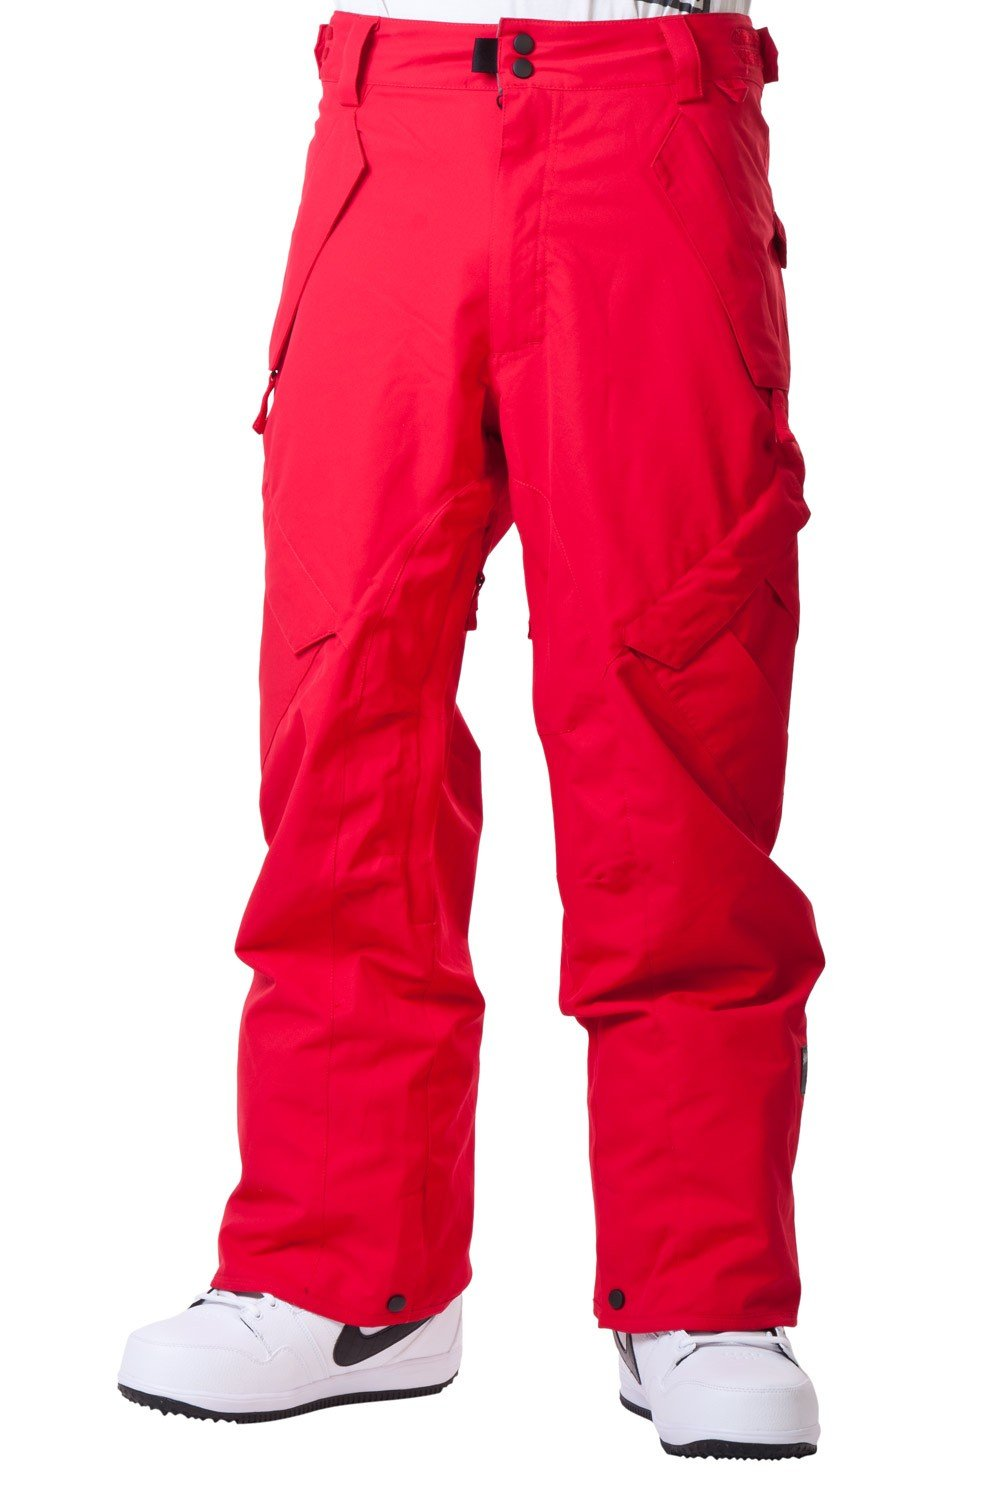 Ride Phinney Snowboardhose (red)